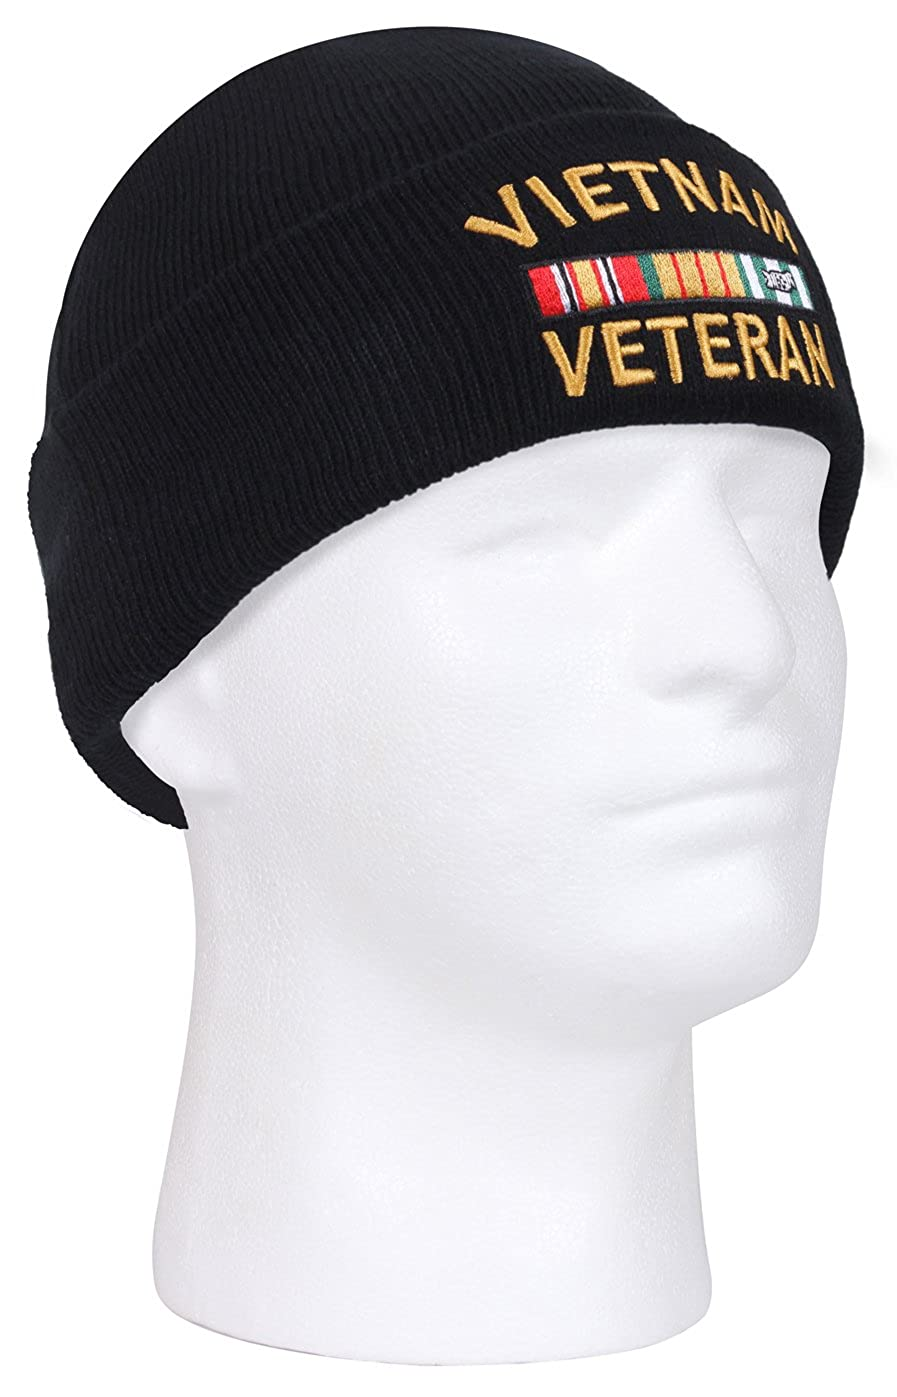 0e8fc67280a Amazon.com  Rothco Vietnam Veteran Deluxe Embroidered Watch Cap  Clothing